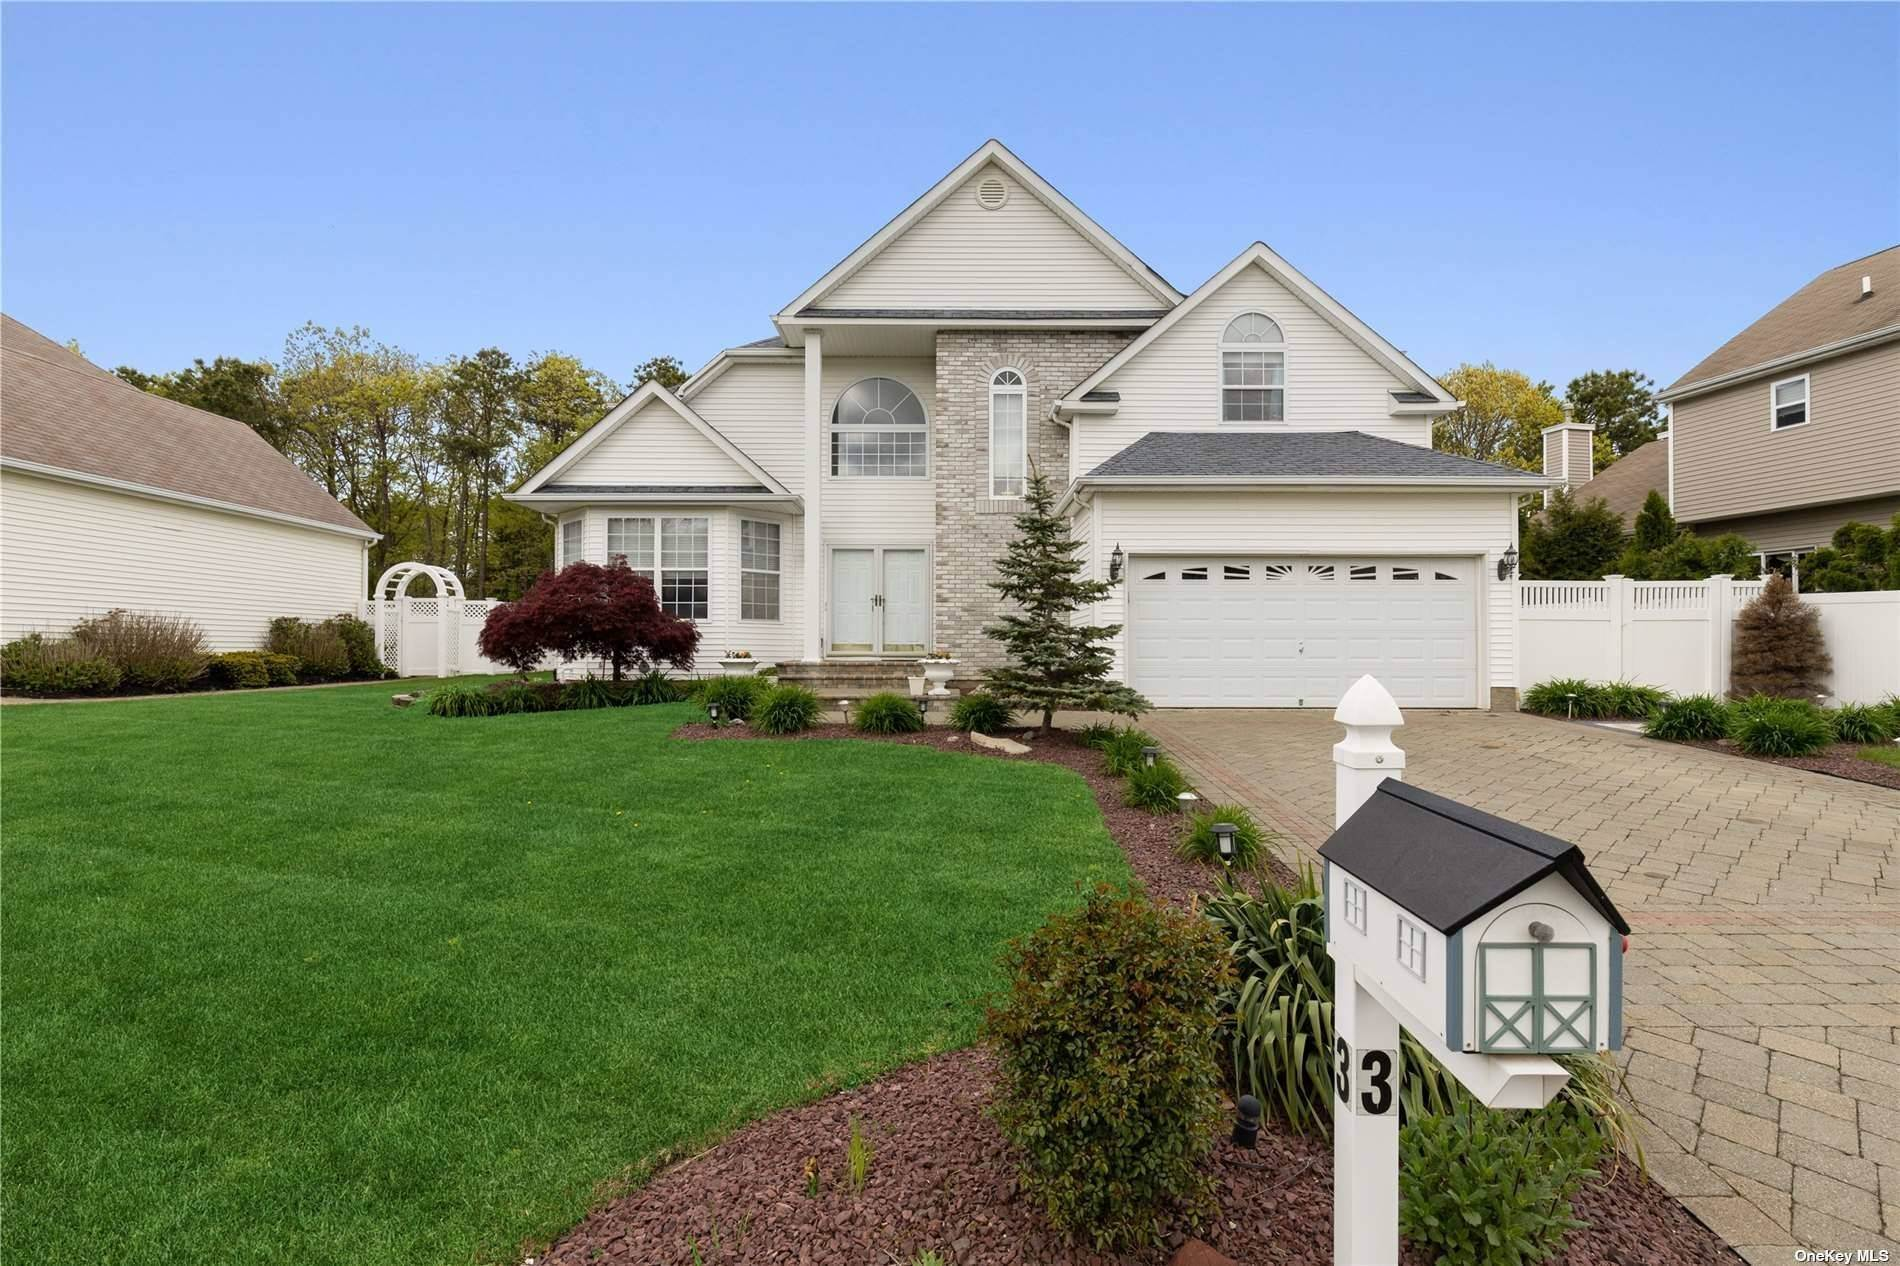 Residential for Sale at 3 Marigold Holtsville, New York 11742 United States